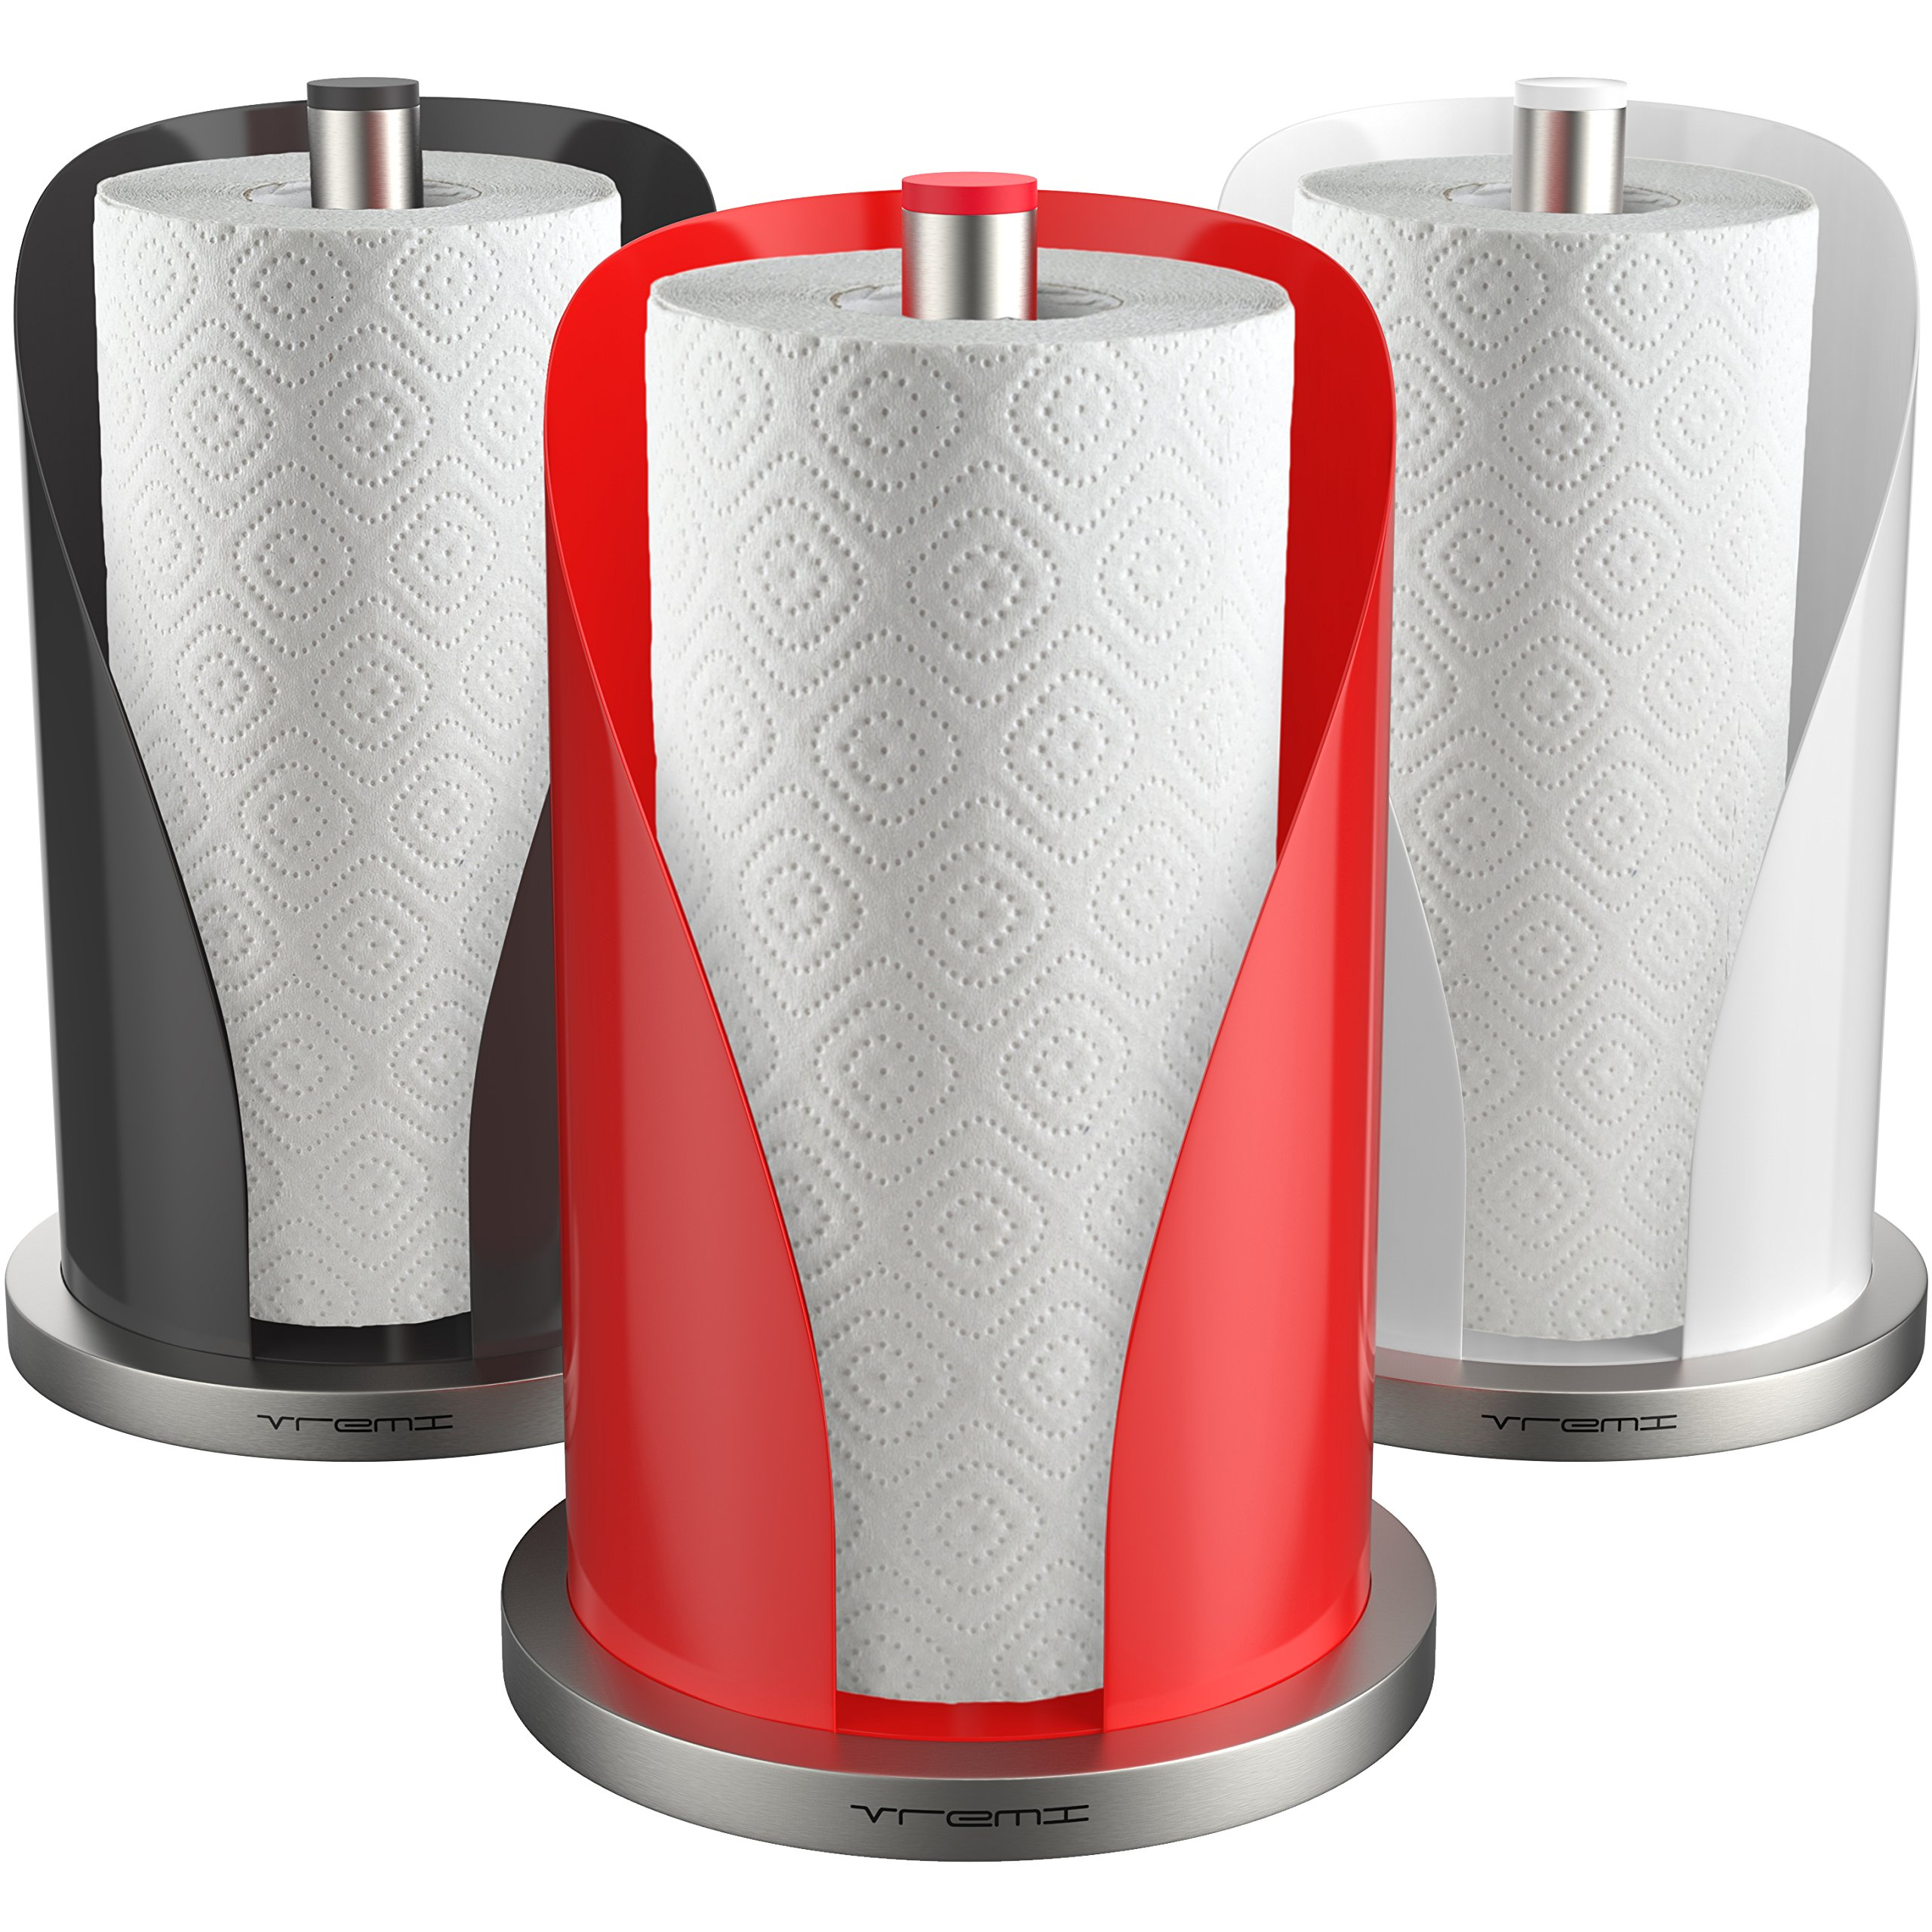 Vremi Non Slip Base and Perfect Tear Vertical Paper Towel Holder for Kitchen Countertop, Red